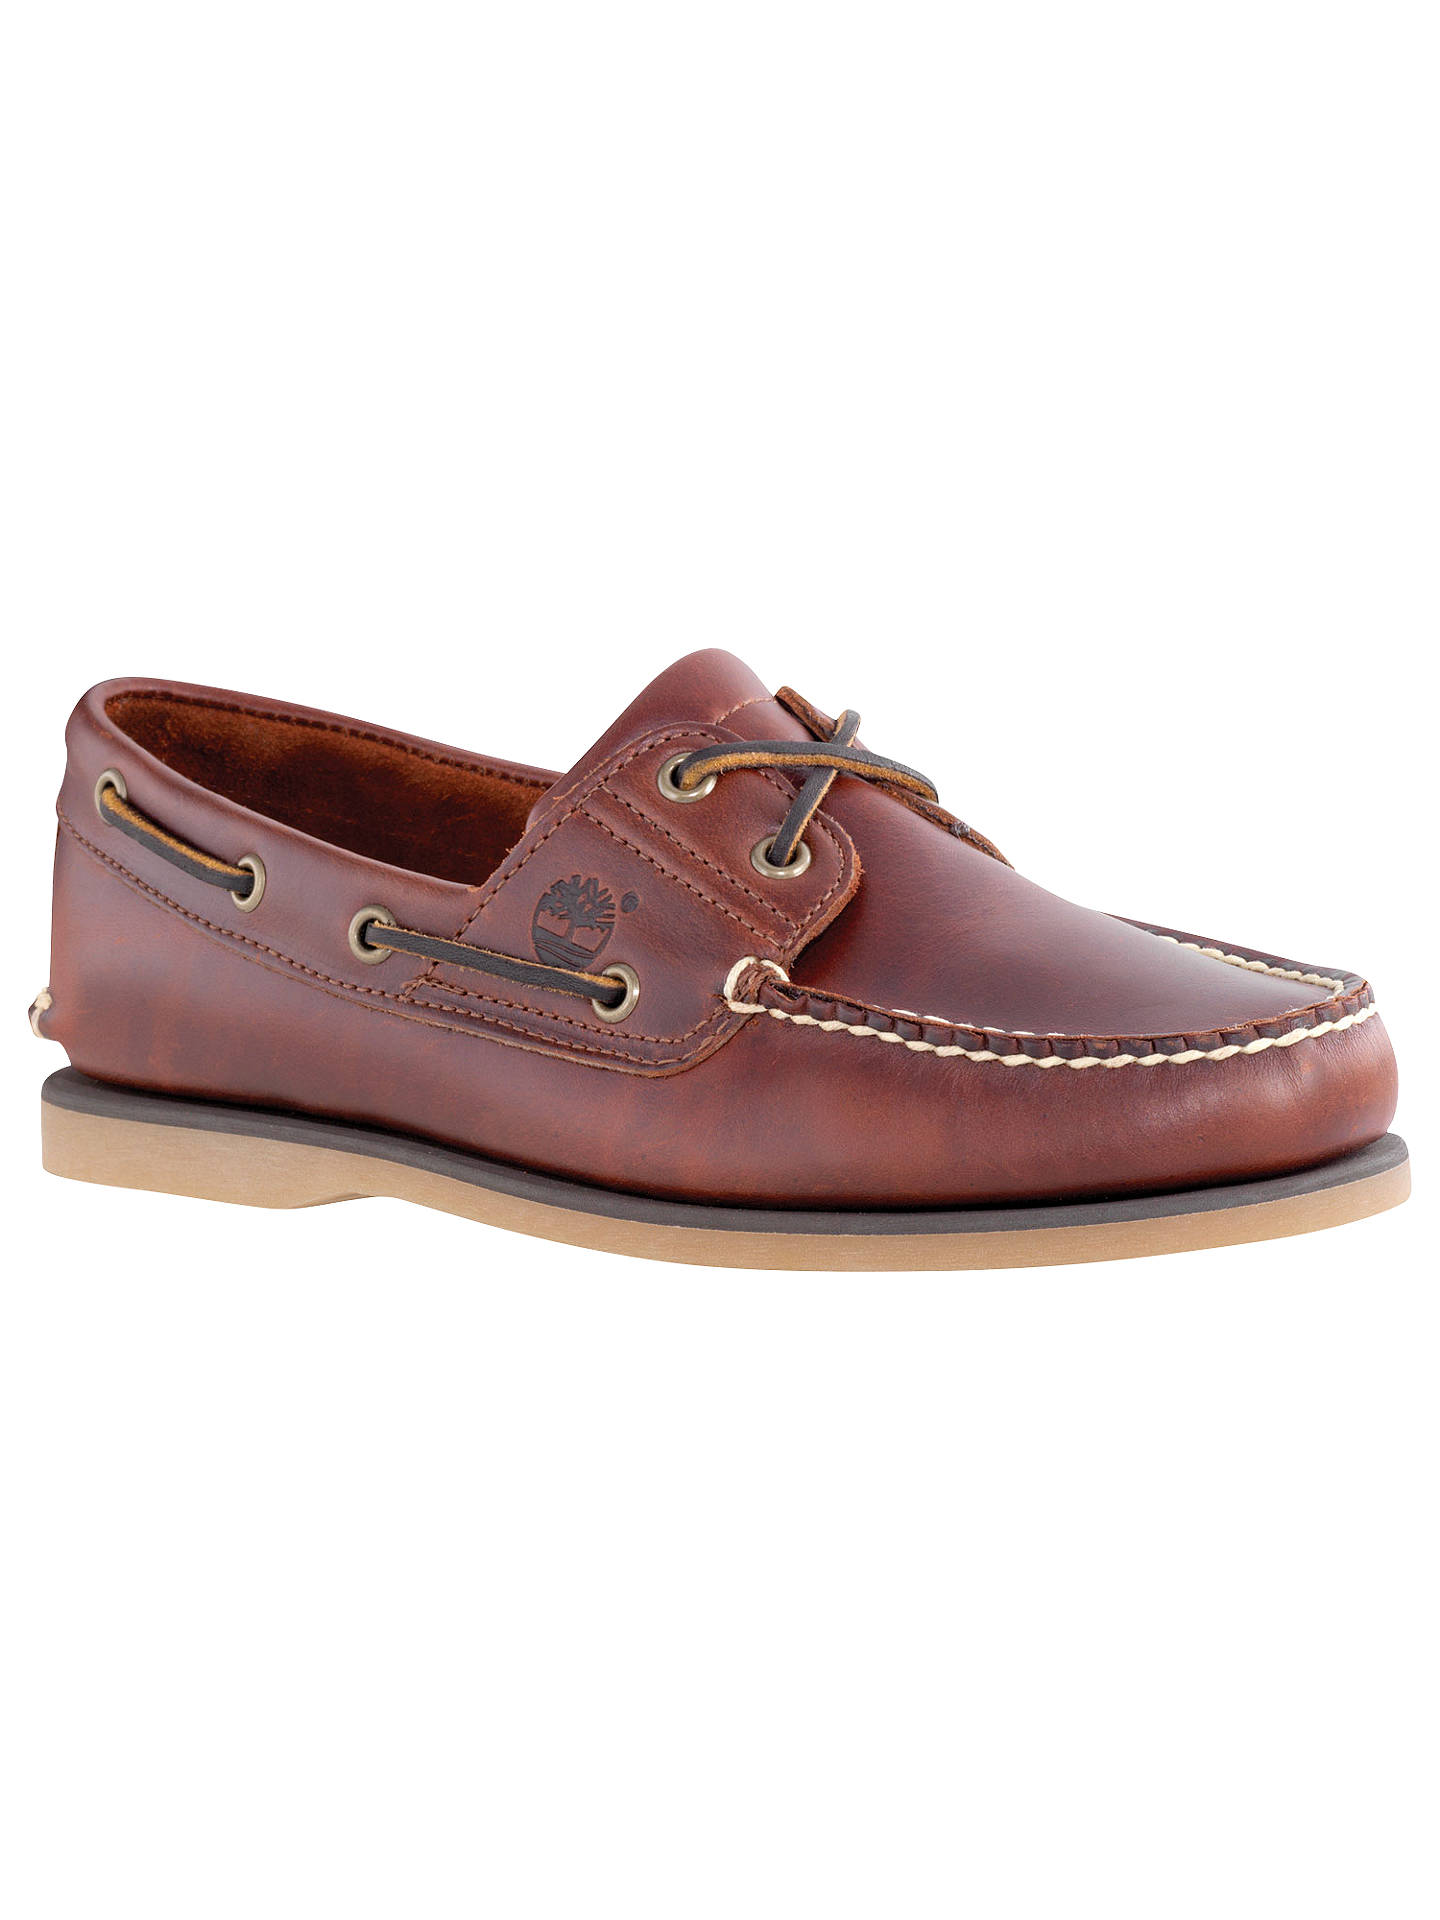 55f755c9f Buy Timberland Leather Boat Shoes